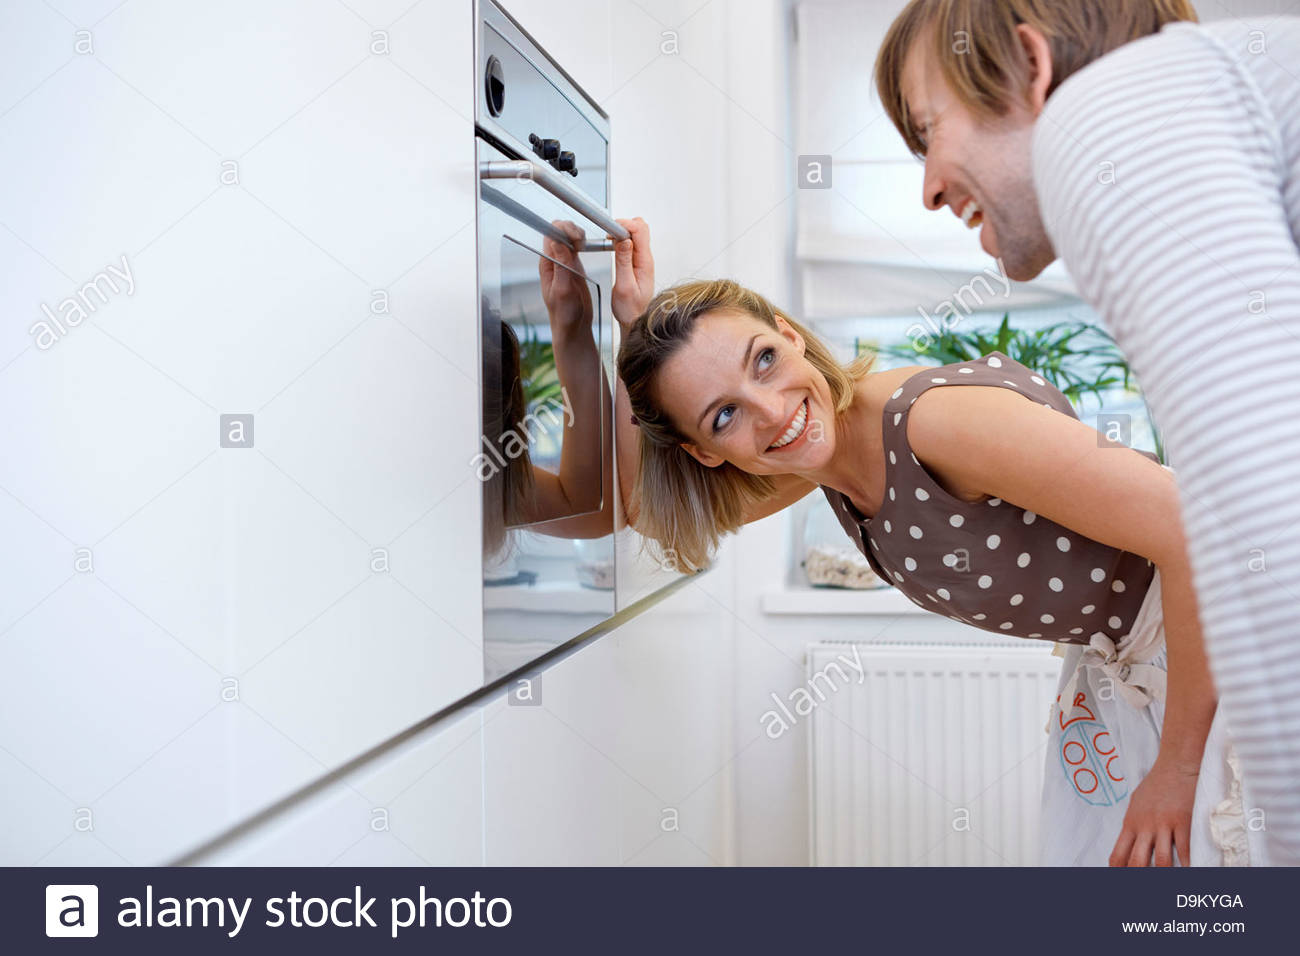 Couple in kitchen, woman opening oven - Stock Image